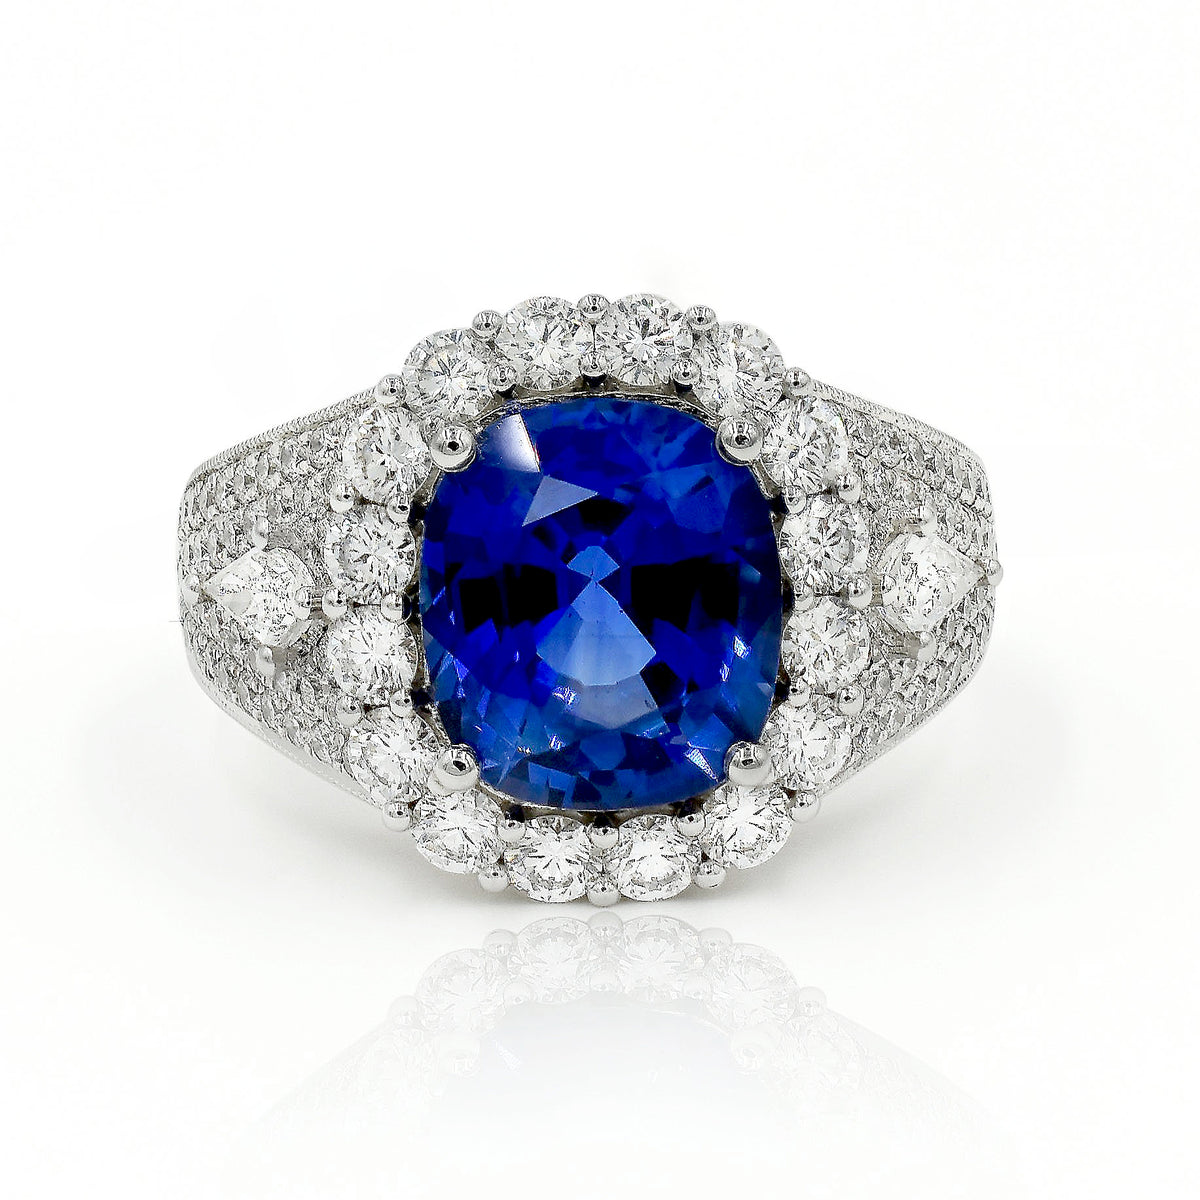 Simon G 18K White Gold 4.14ct Sapphire and Diamond Ring